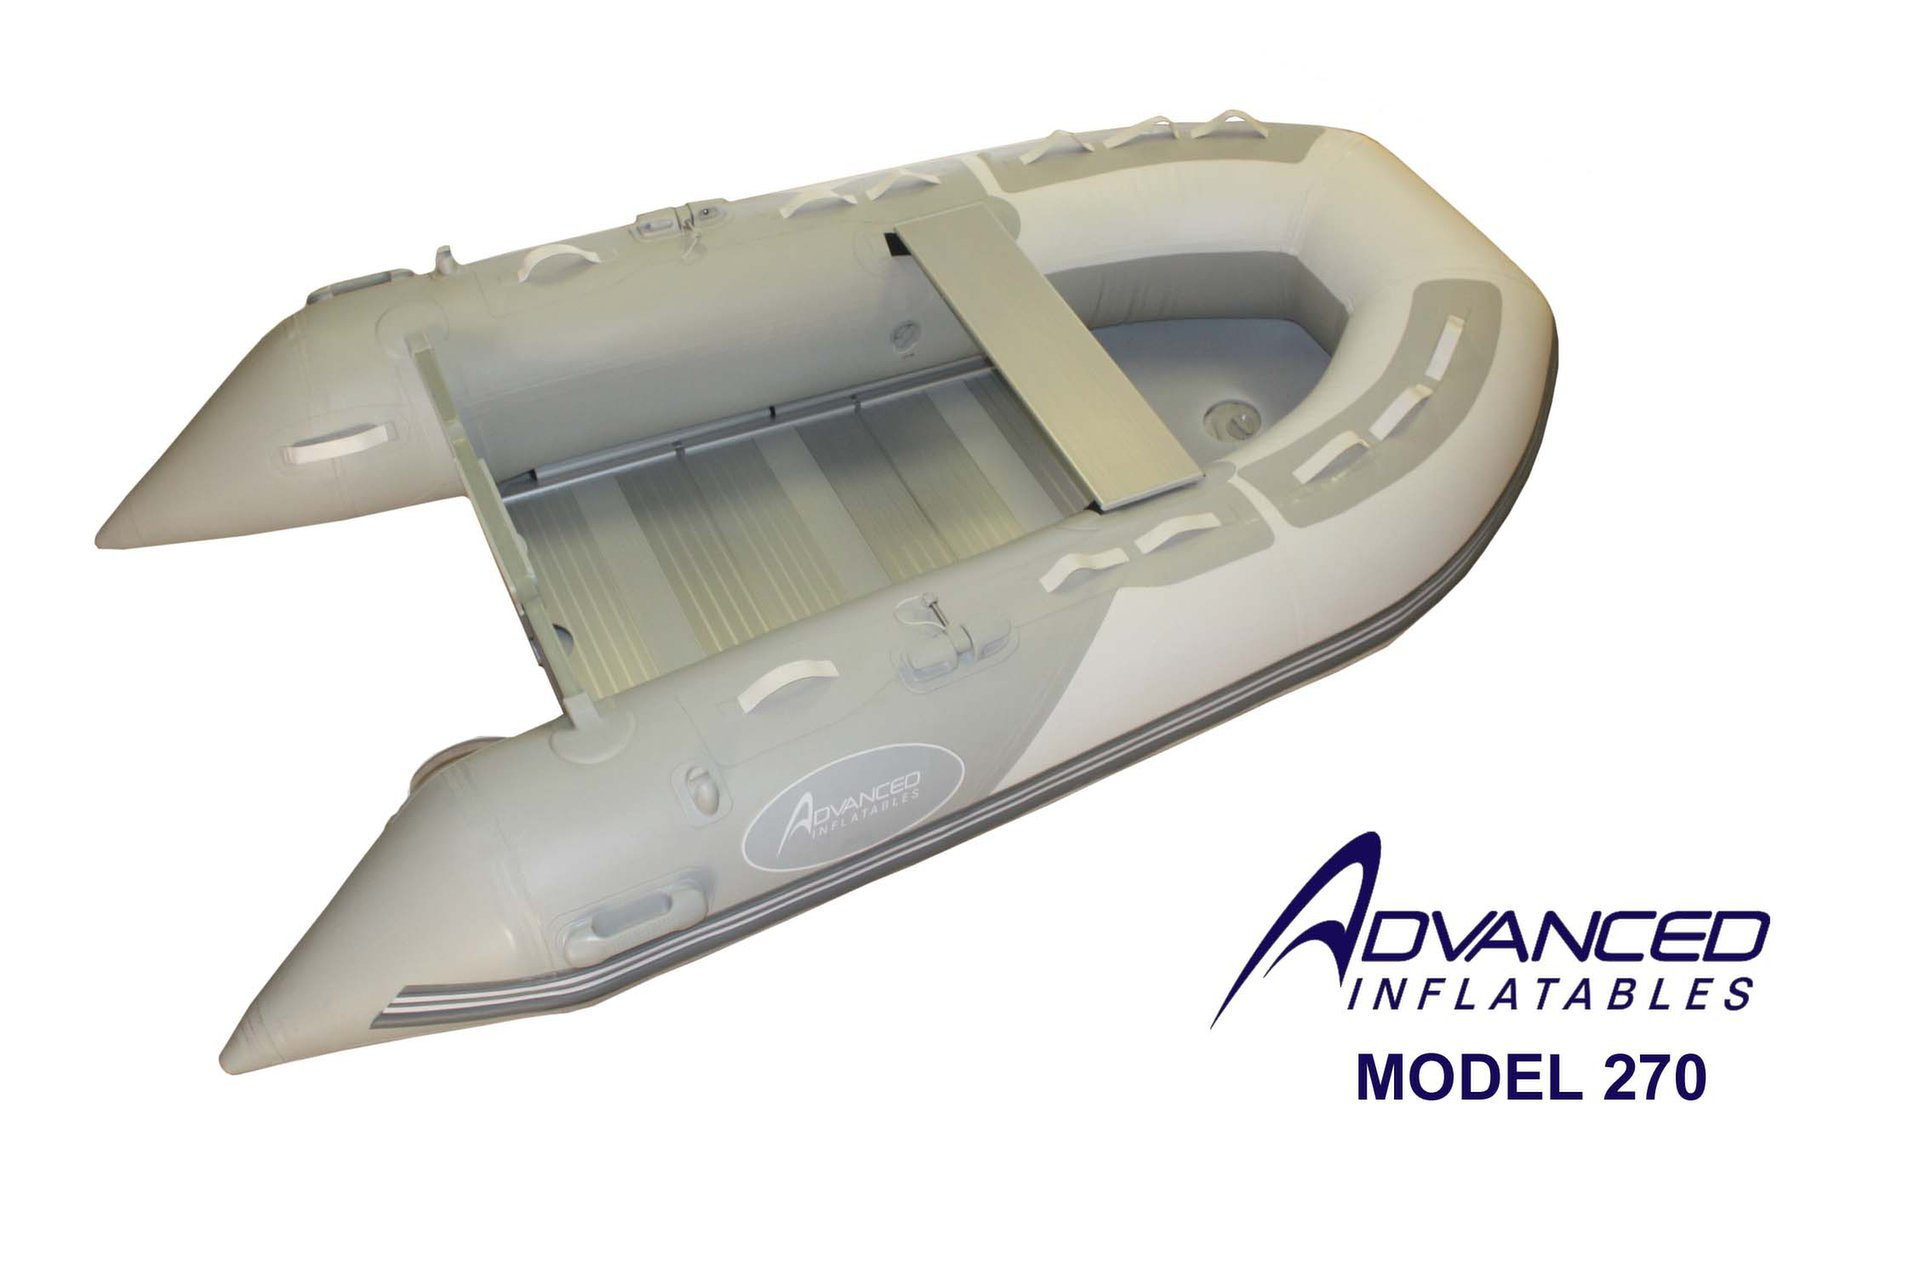 Stupendous Advanced Inflatables Boat Inzonedesignstudio Interior Chair Design Inzonedesignstudiocom